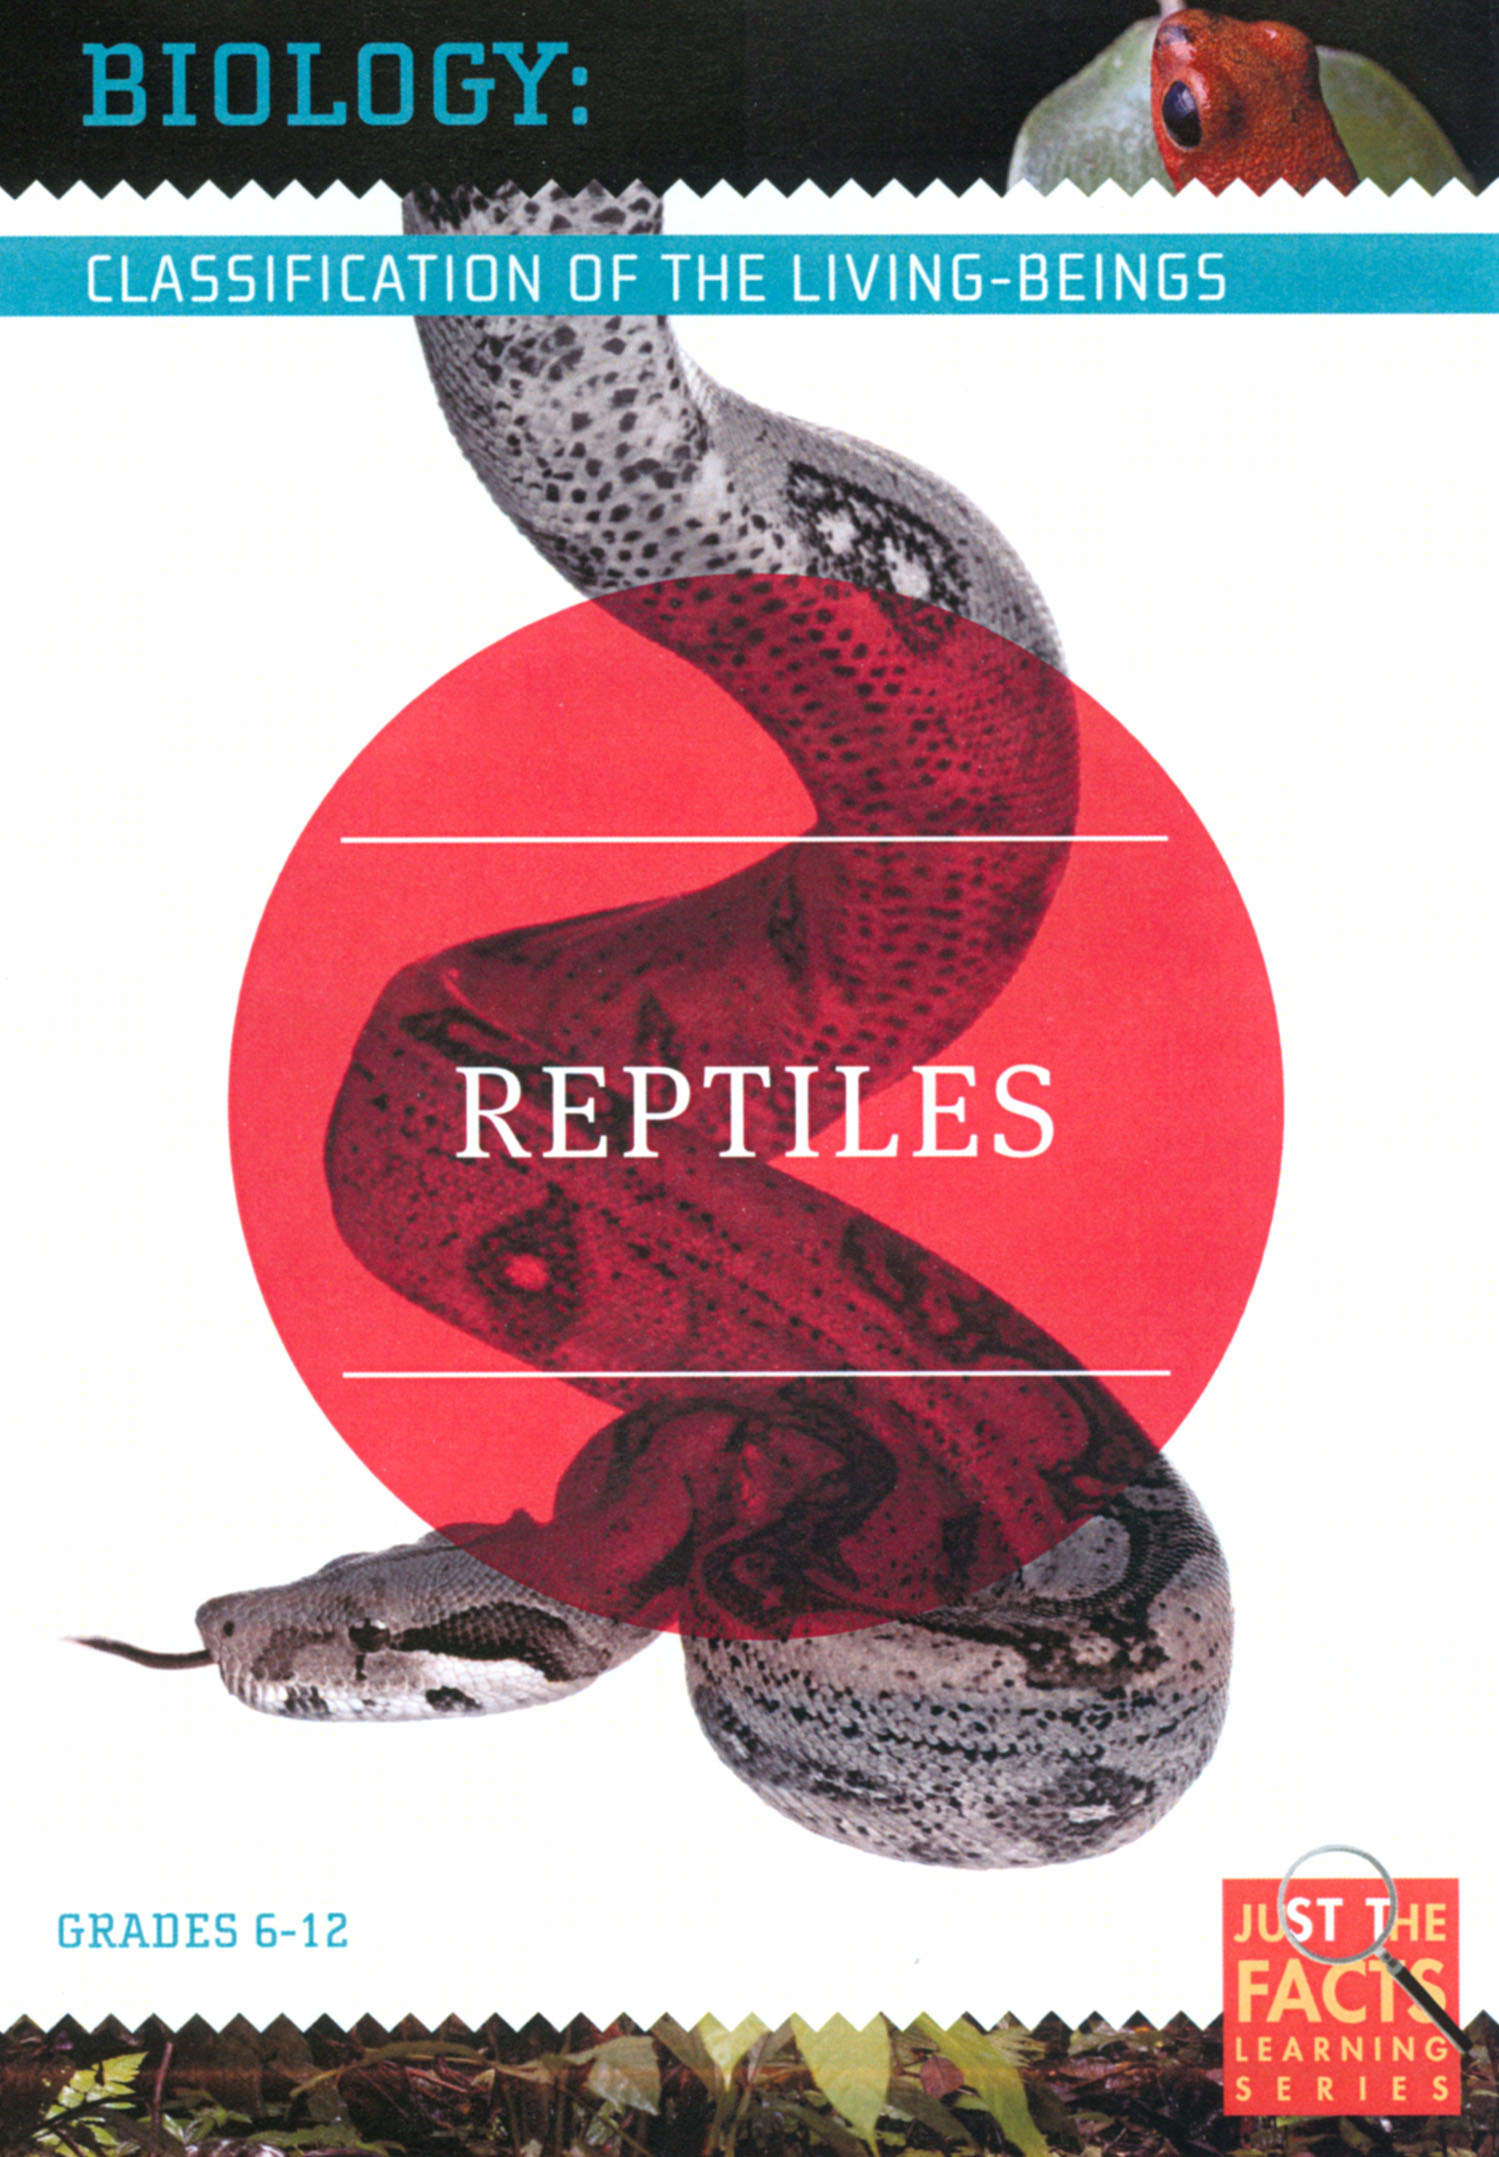 Biology Classification: Reptiles